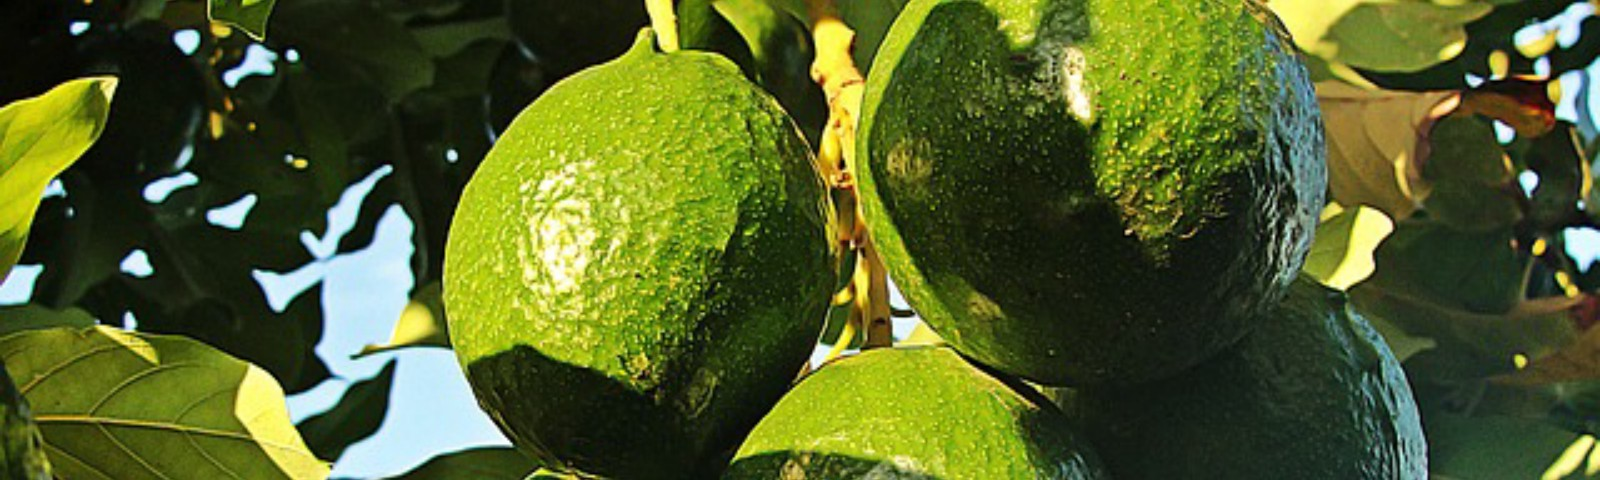 avocado-fruit-tree-and-seed